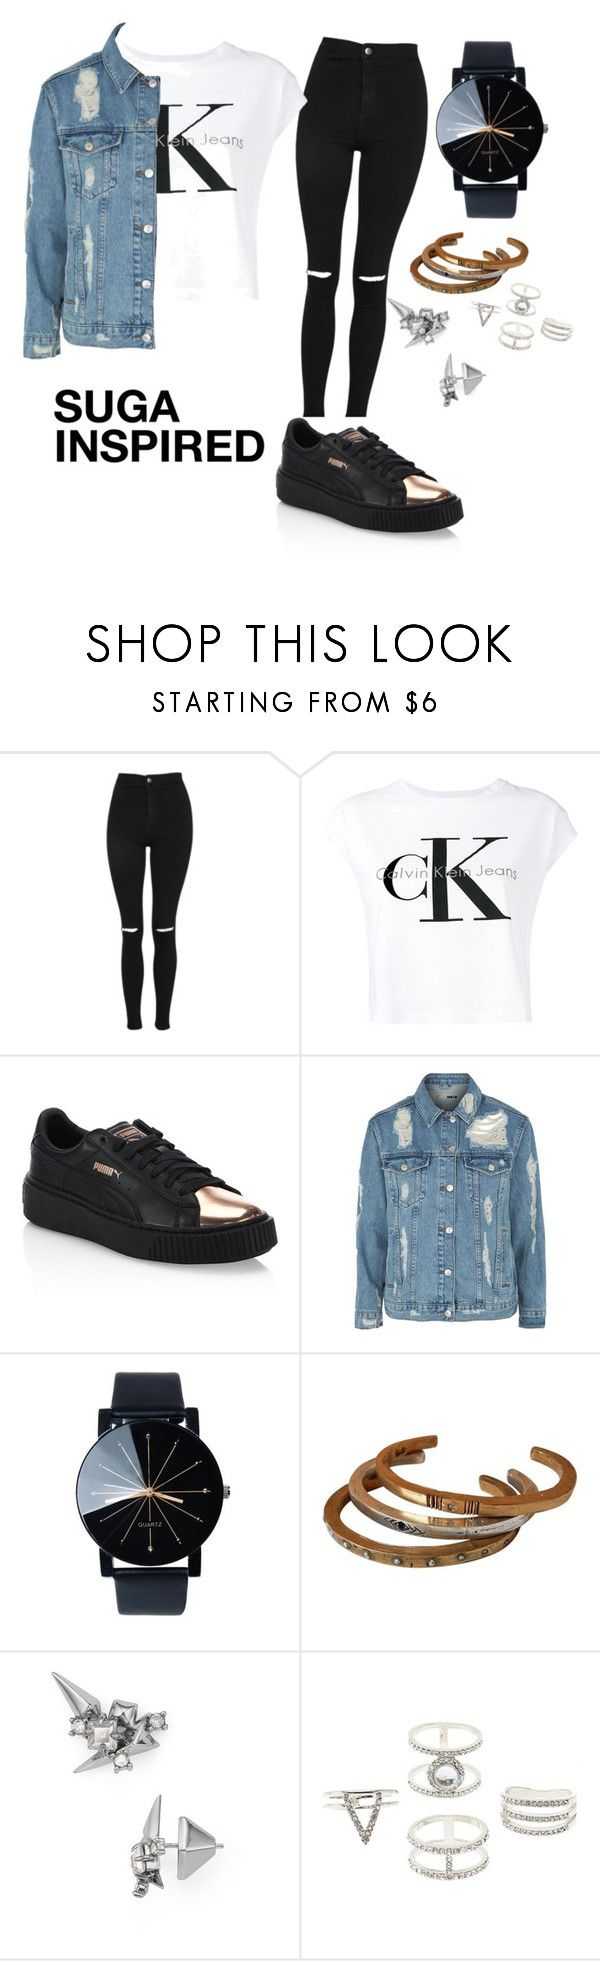 """BTS INSPIRED OUTFITS"" by btsmyhearteu on Polyvore featuring Topshop, Calvin Klein Jeans, Puma, Alexis Bittar and Charlotte Russe"